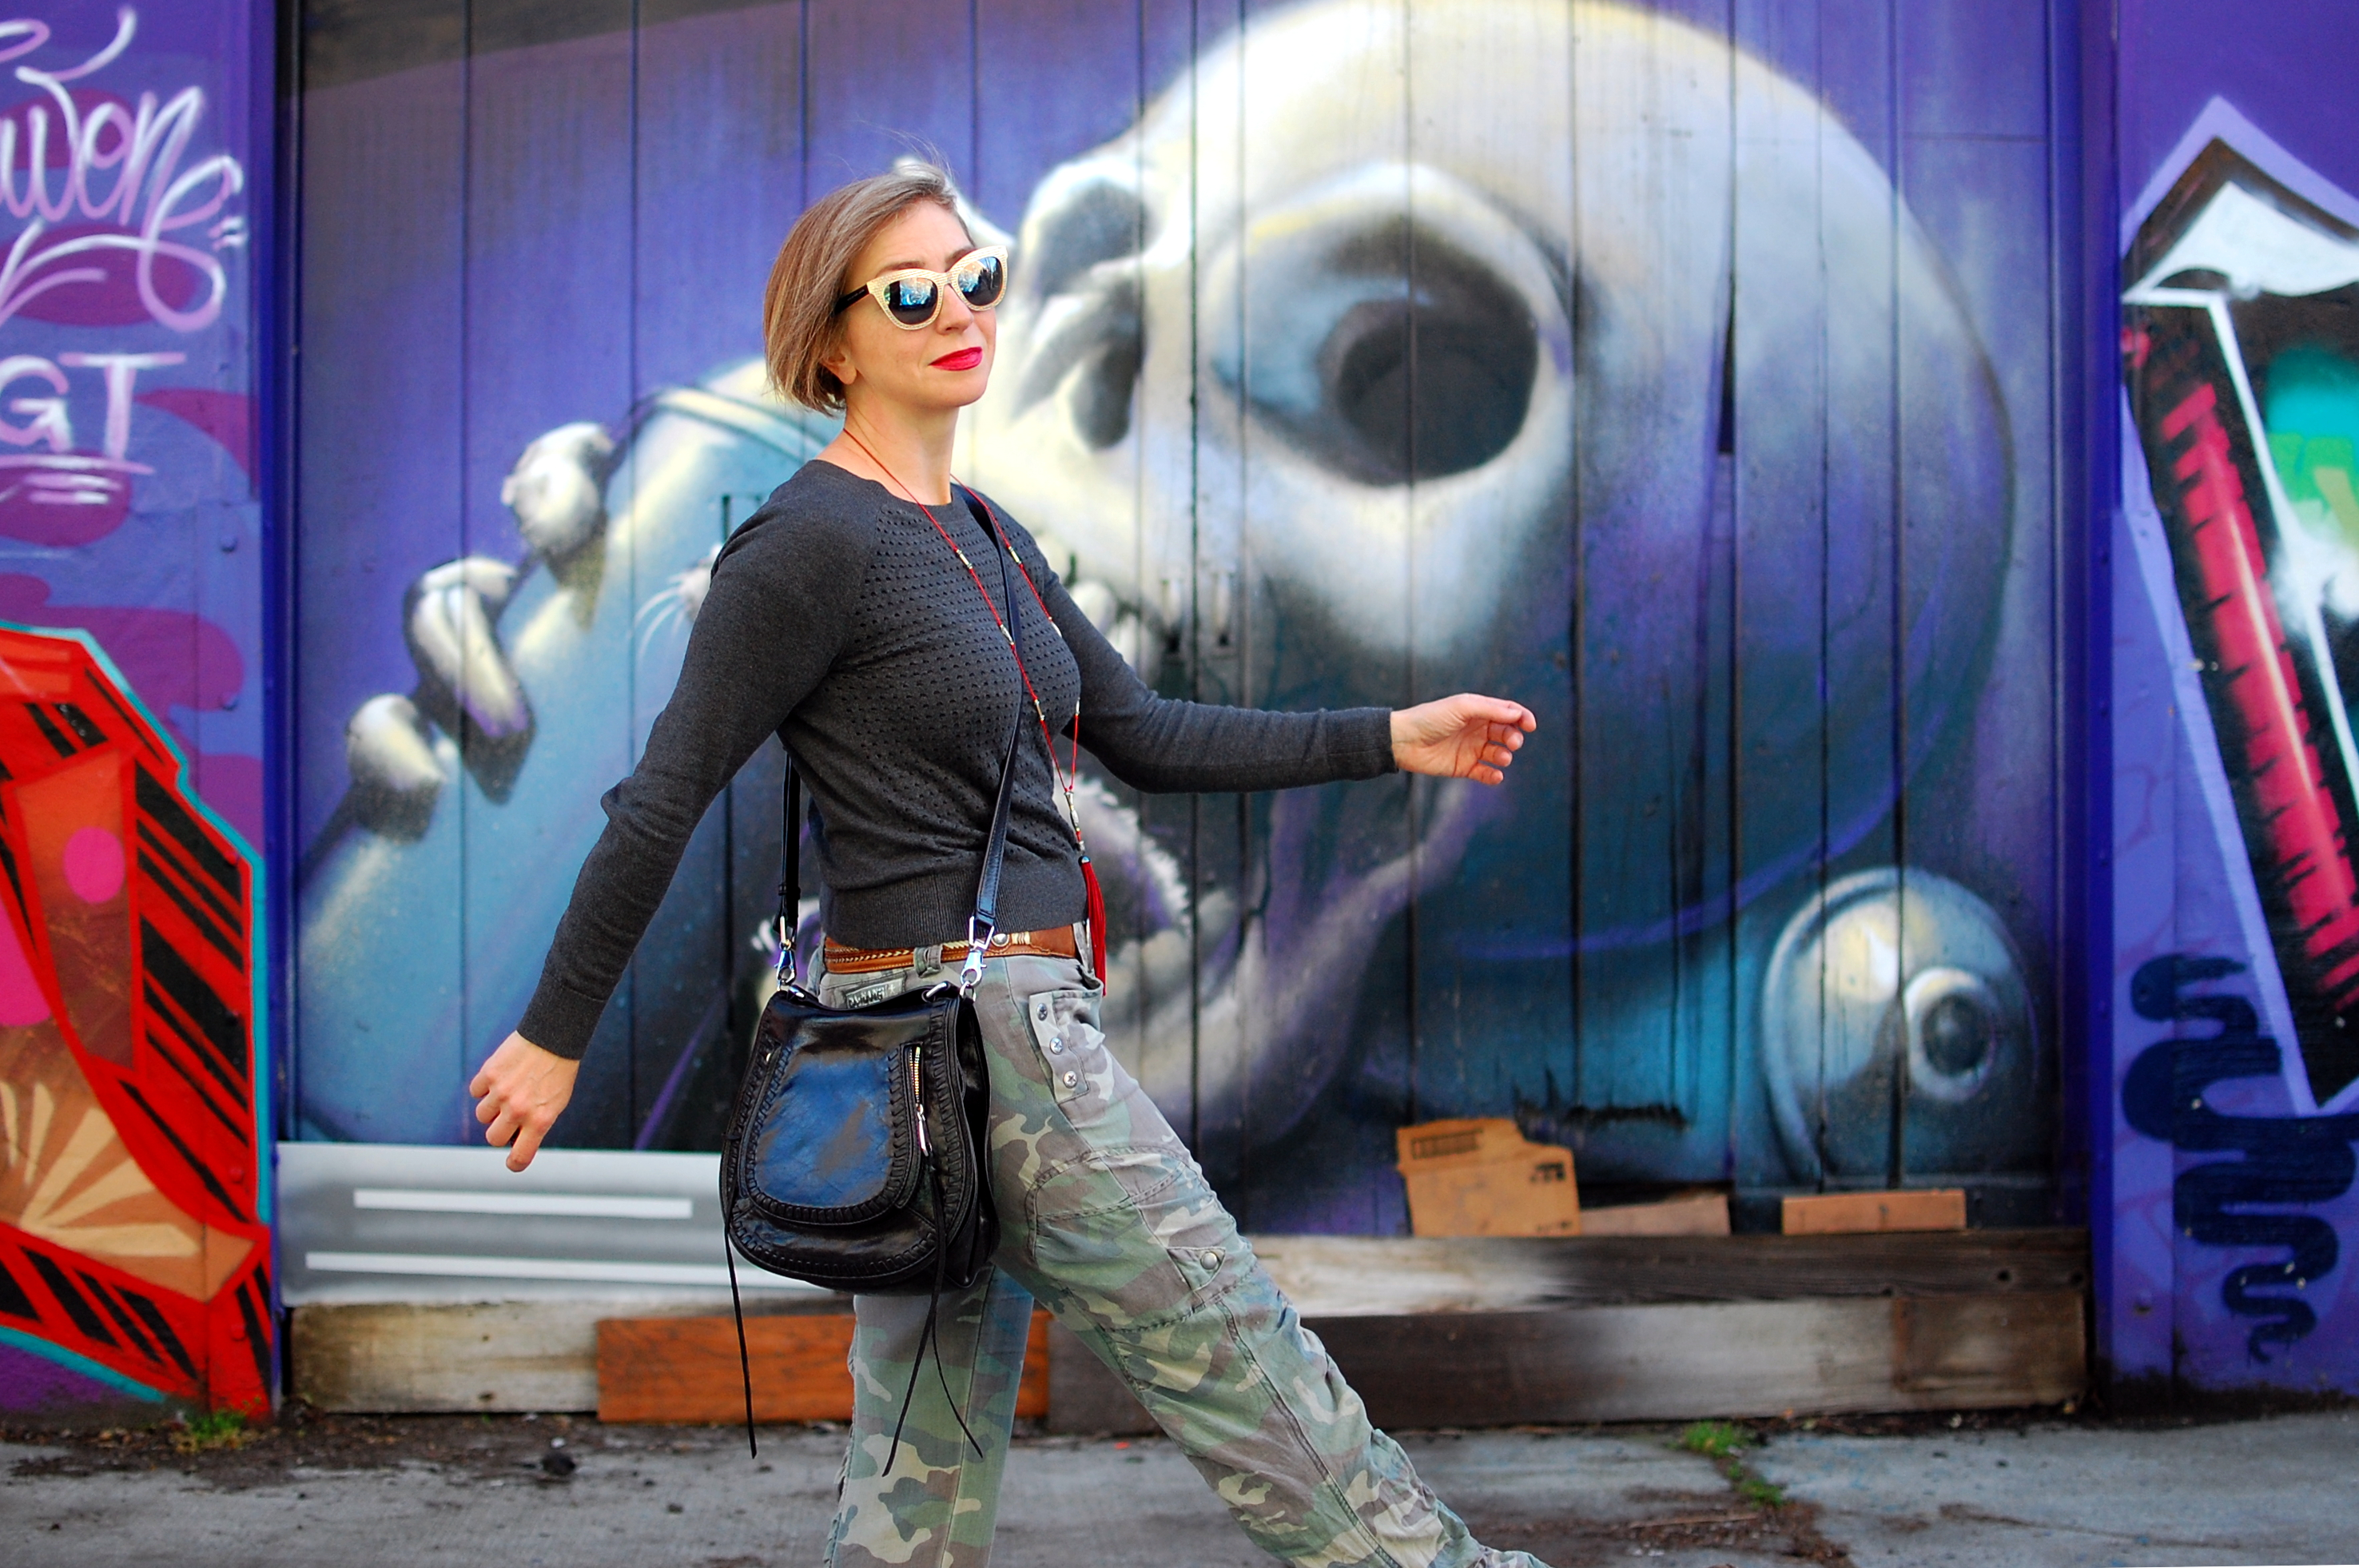 mural skull ootd whatiwore2day camo olive gray sacramento